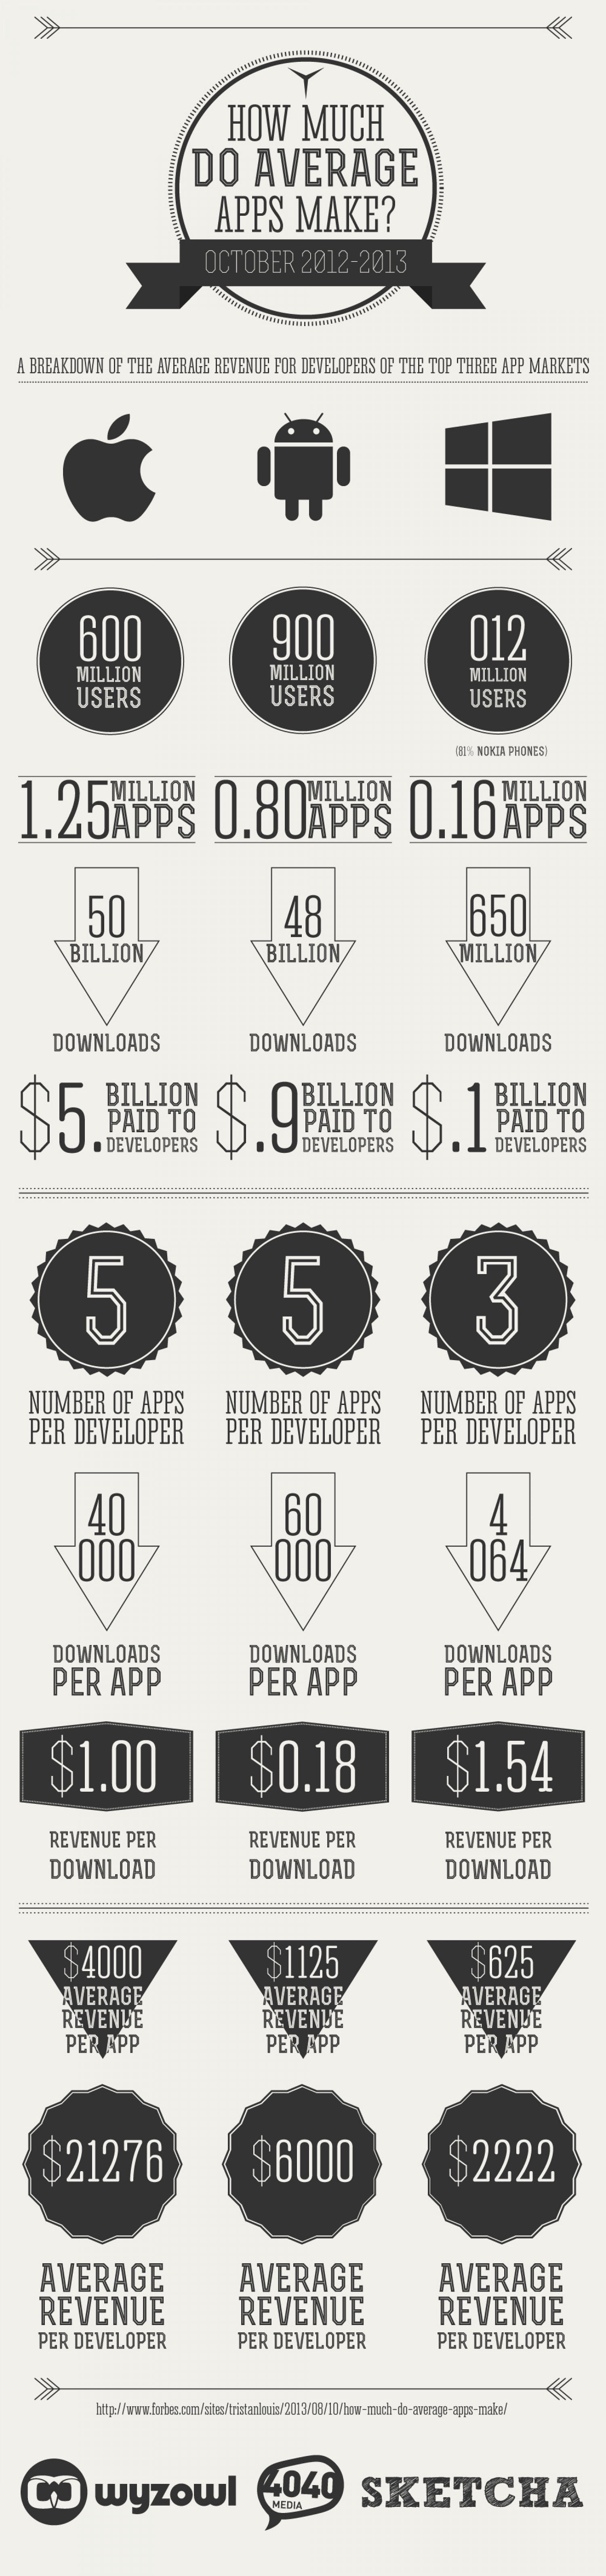 How Much Do Apps Make? Infographic